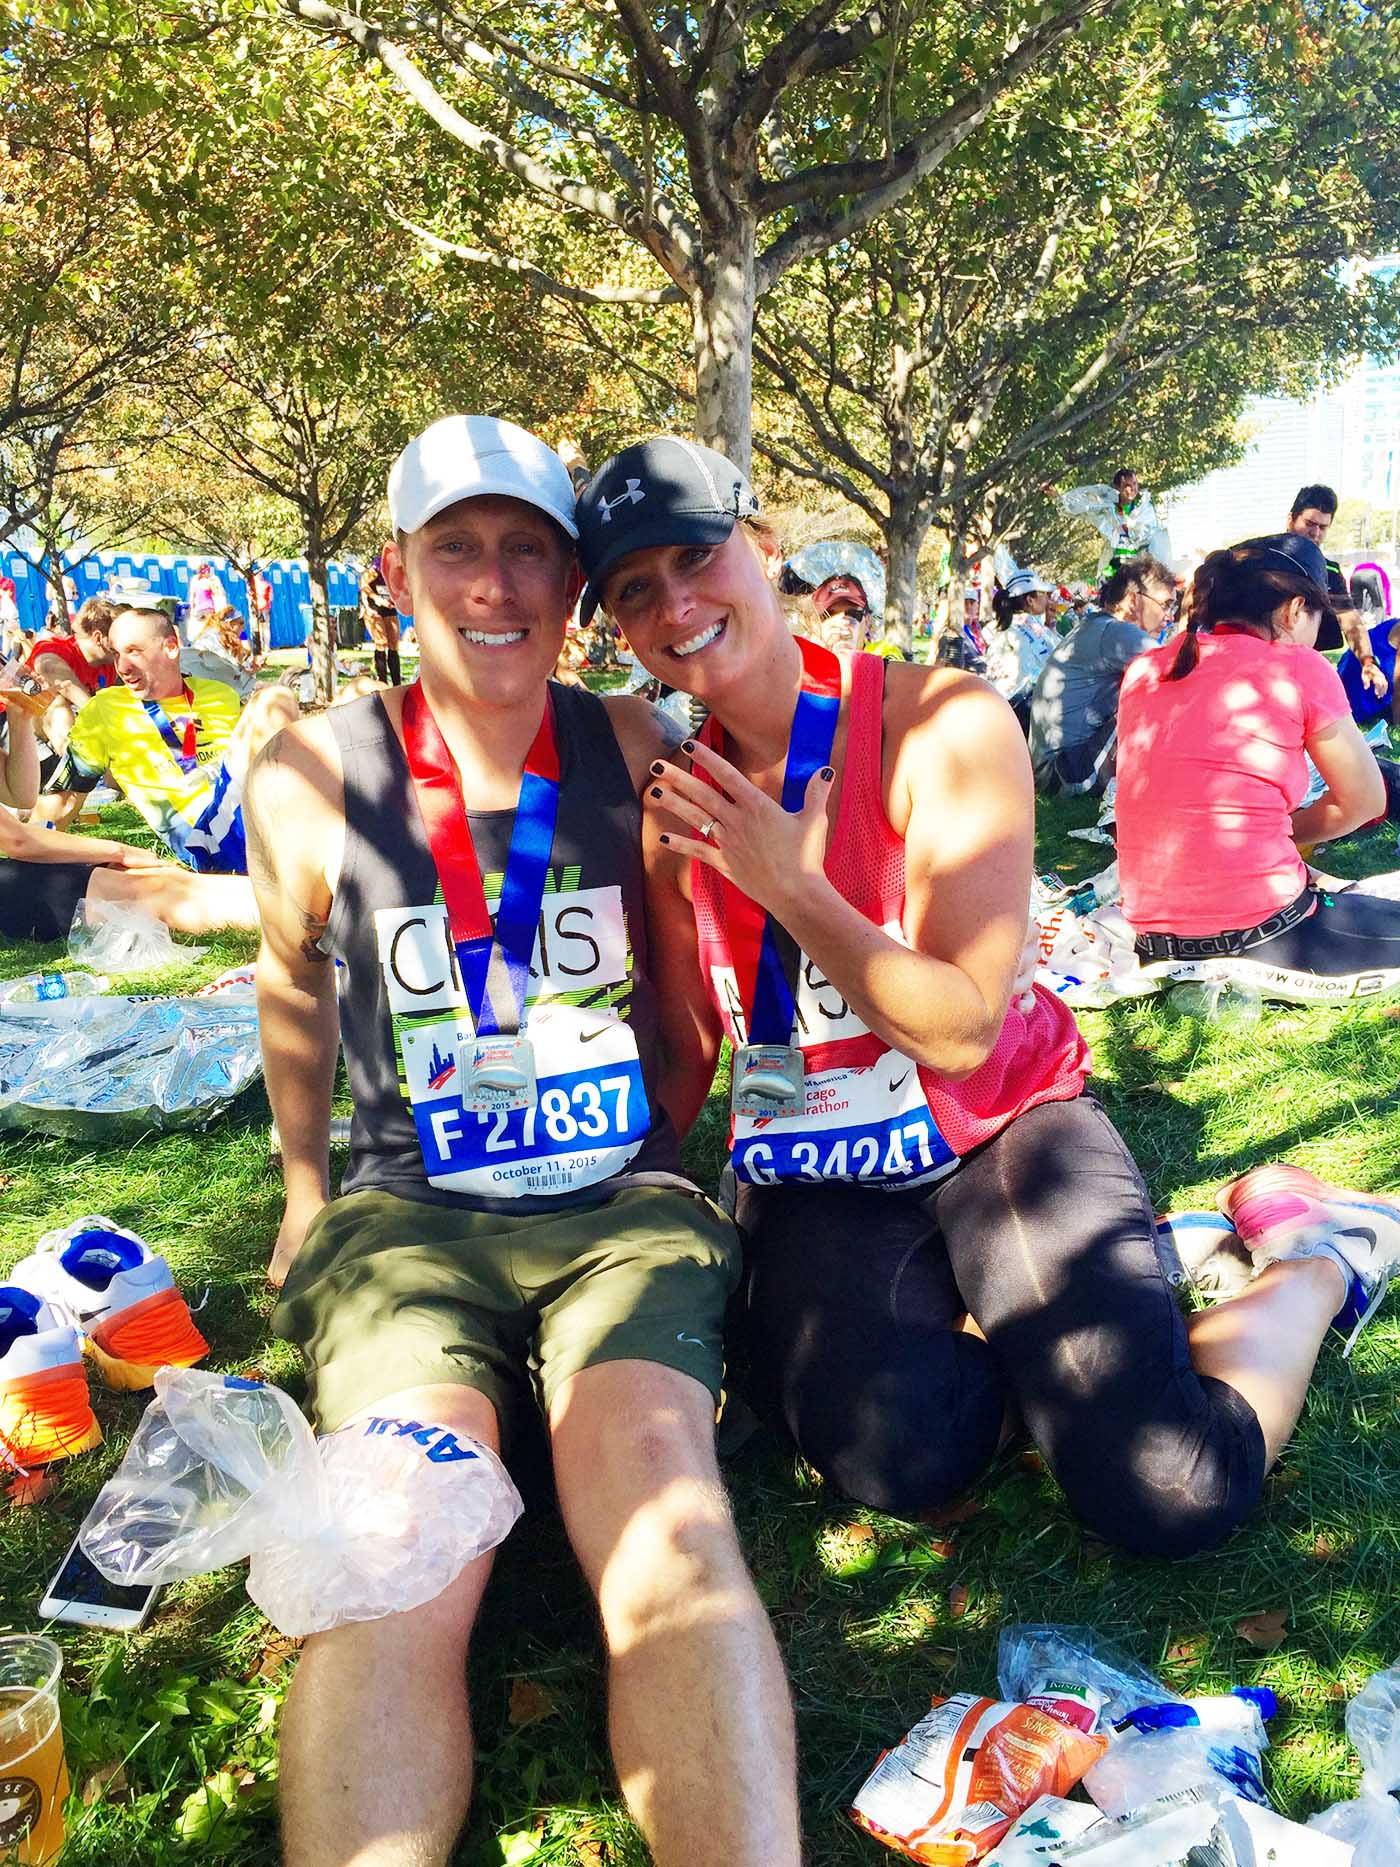 asweatlife_couple-celebrates-2015-chicago-marathon-engagement-at-2016_2015-engagement